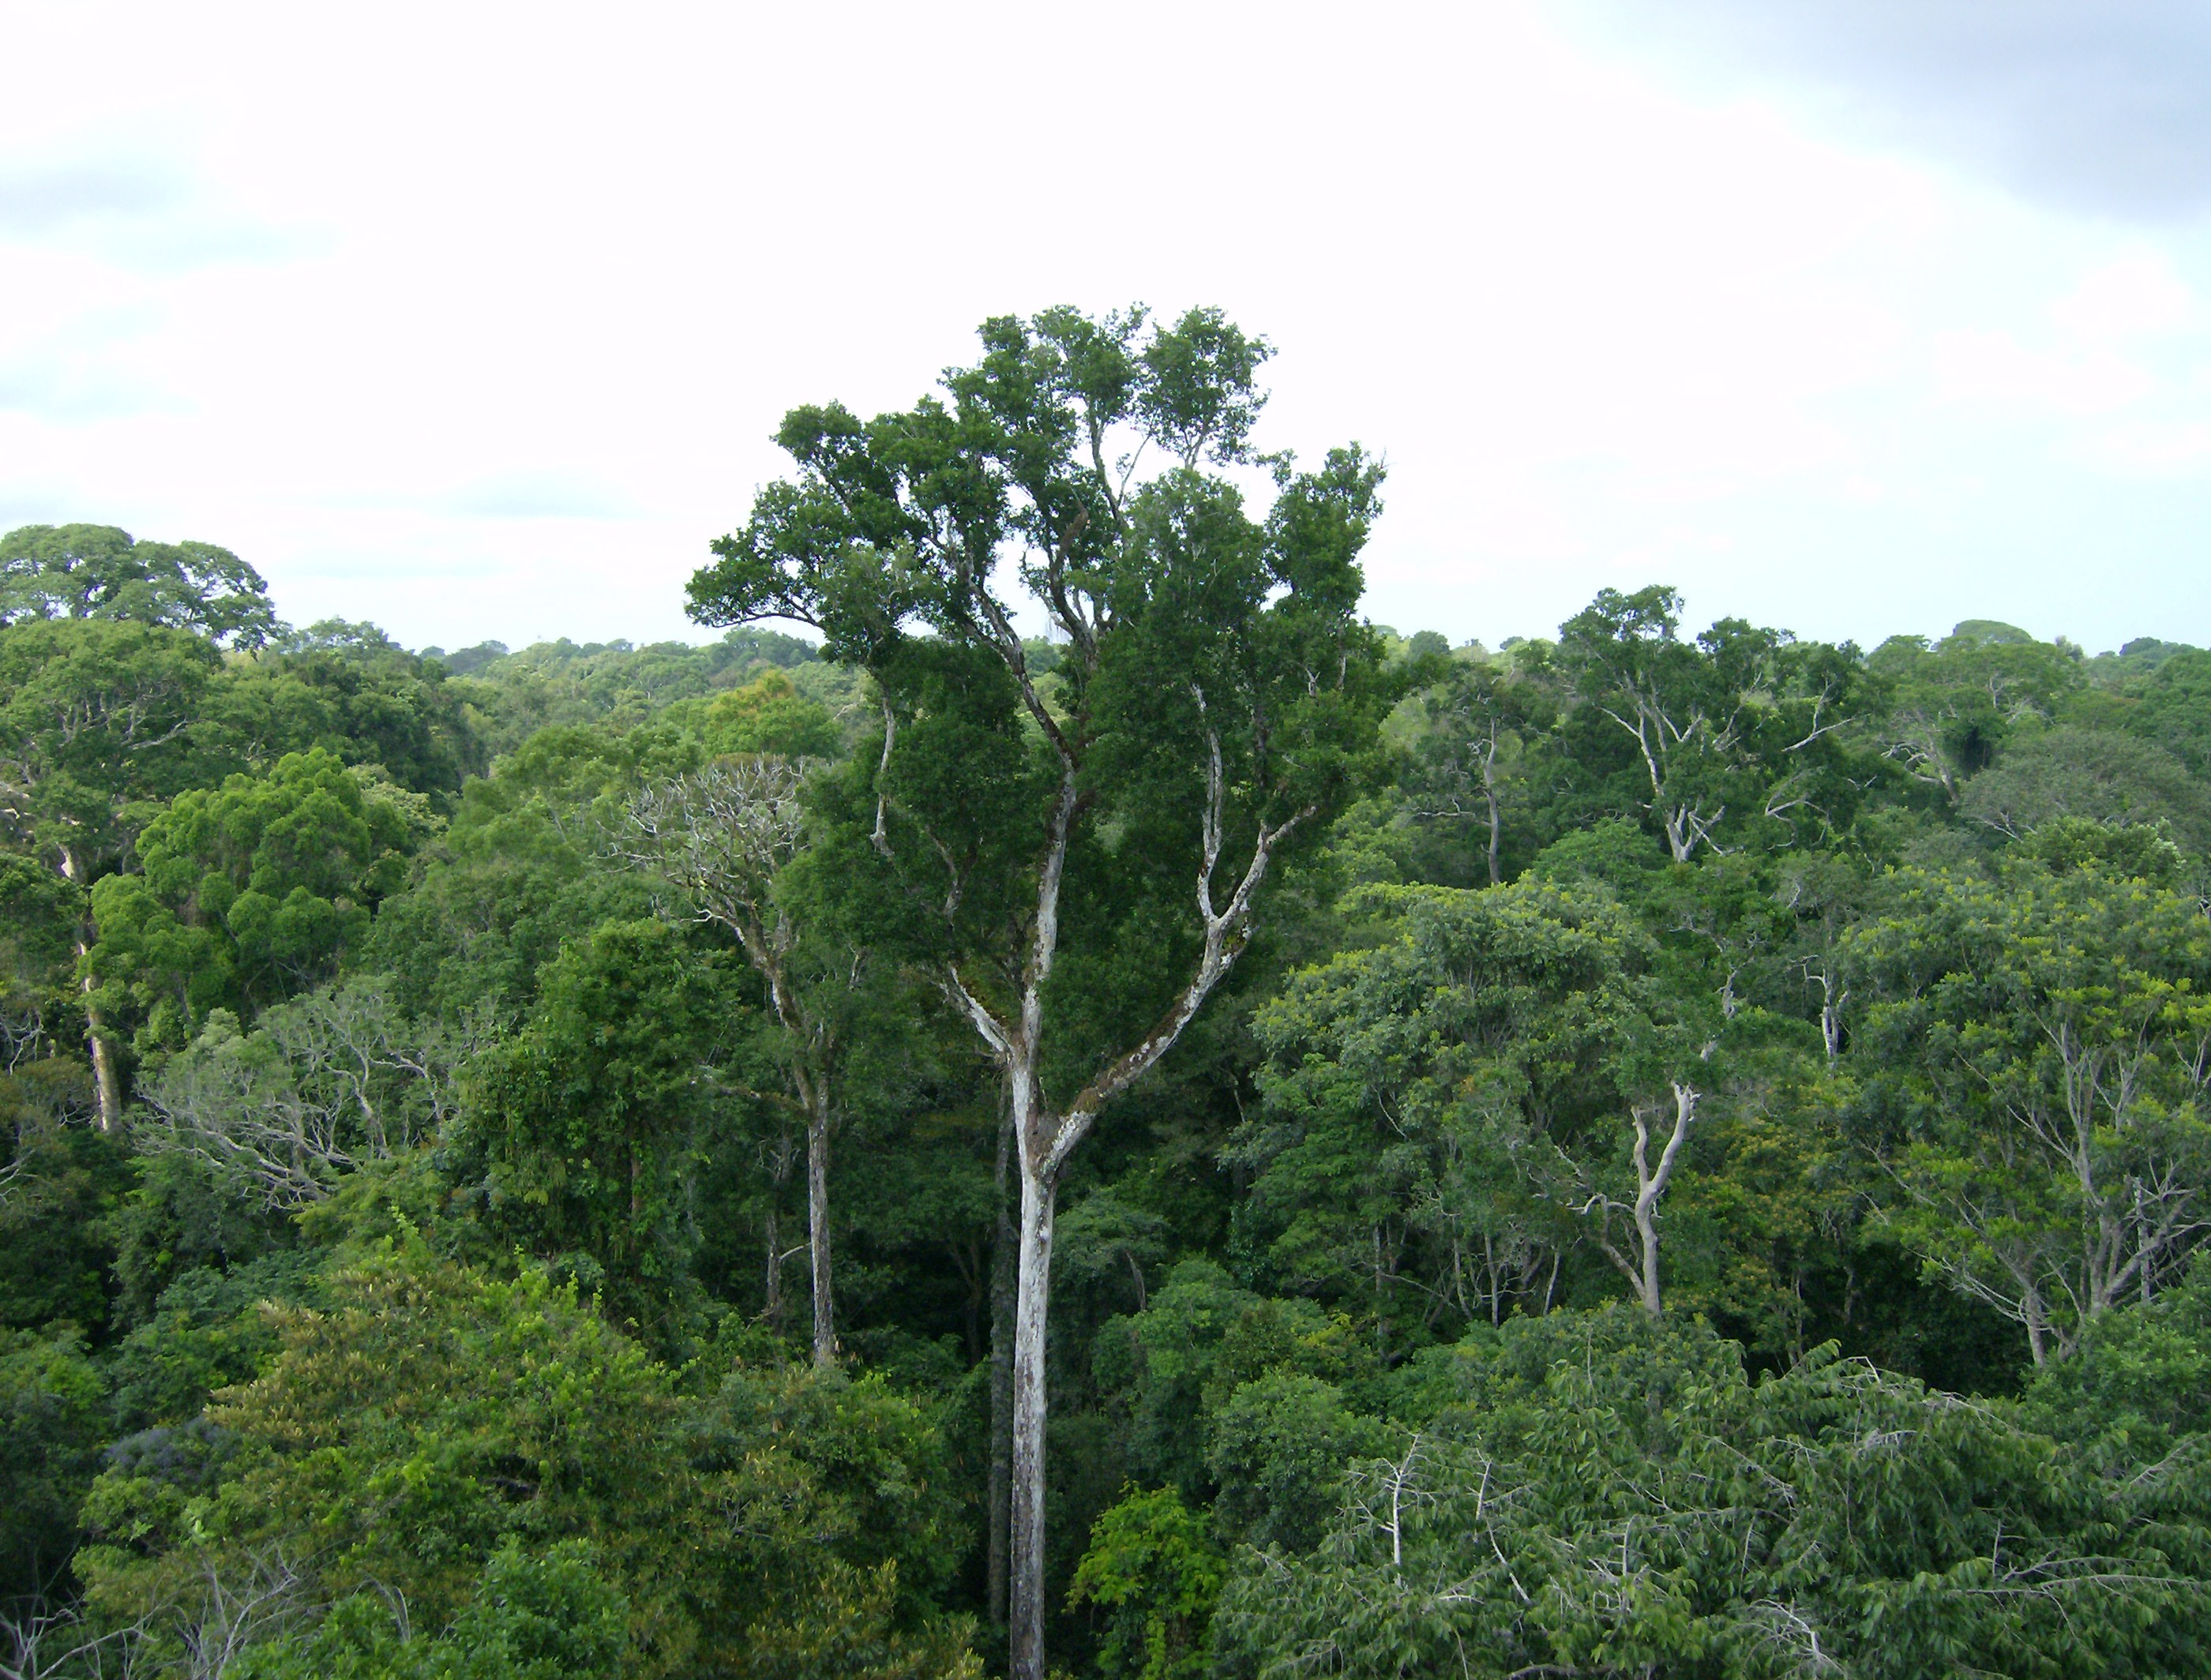 Drawn rainforest amazon forest Amazon It in More growth